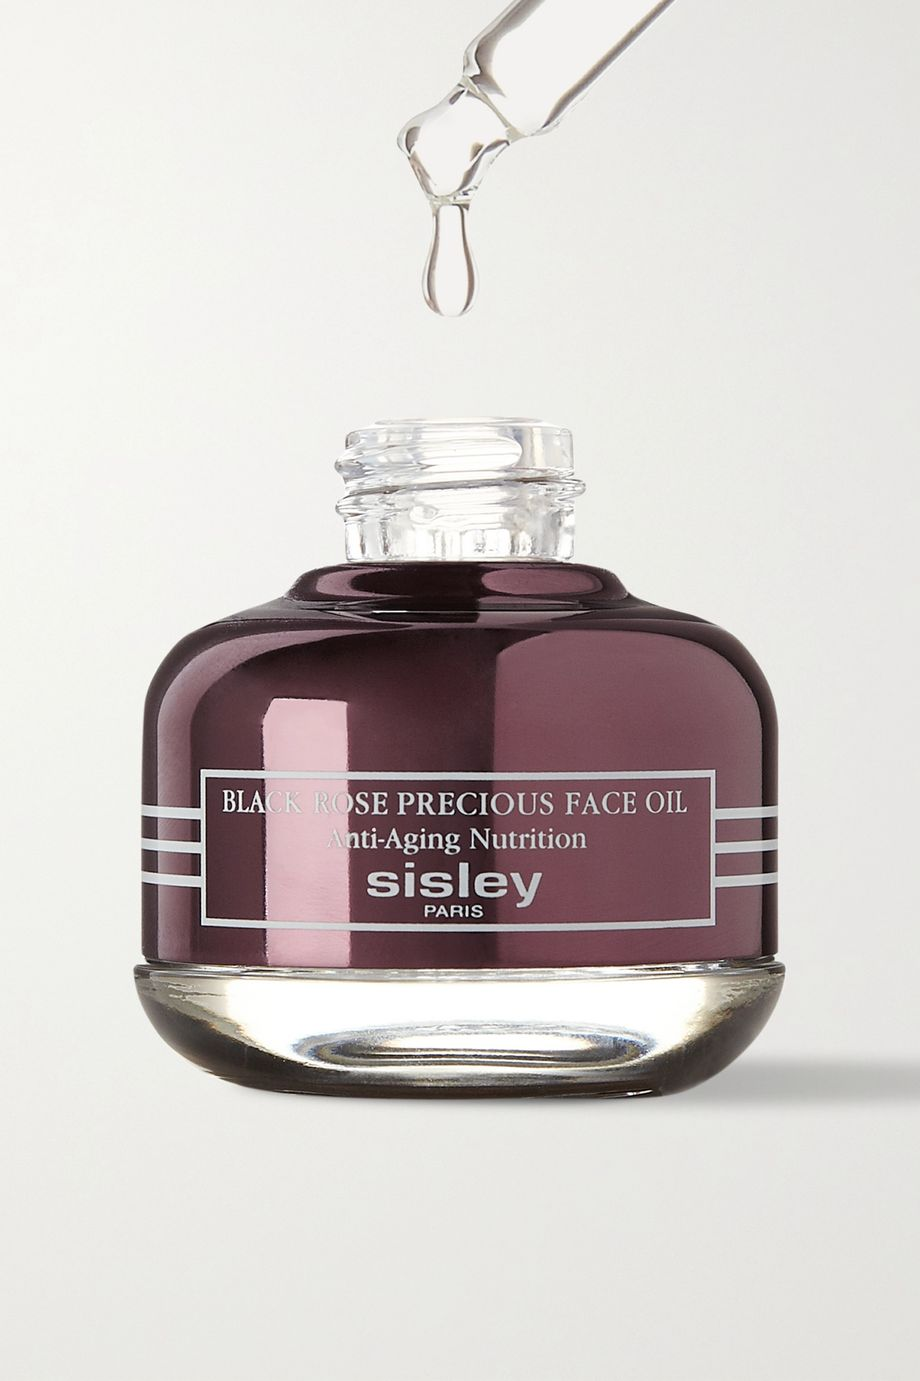 Sisley Black Rose Precious Face Oil, 25ml